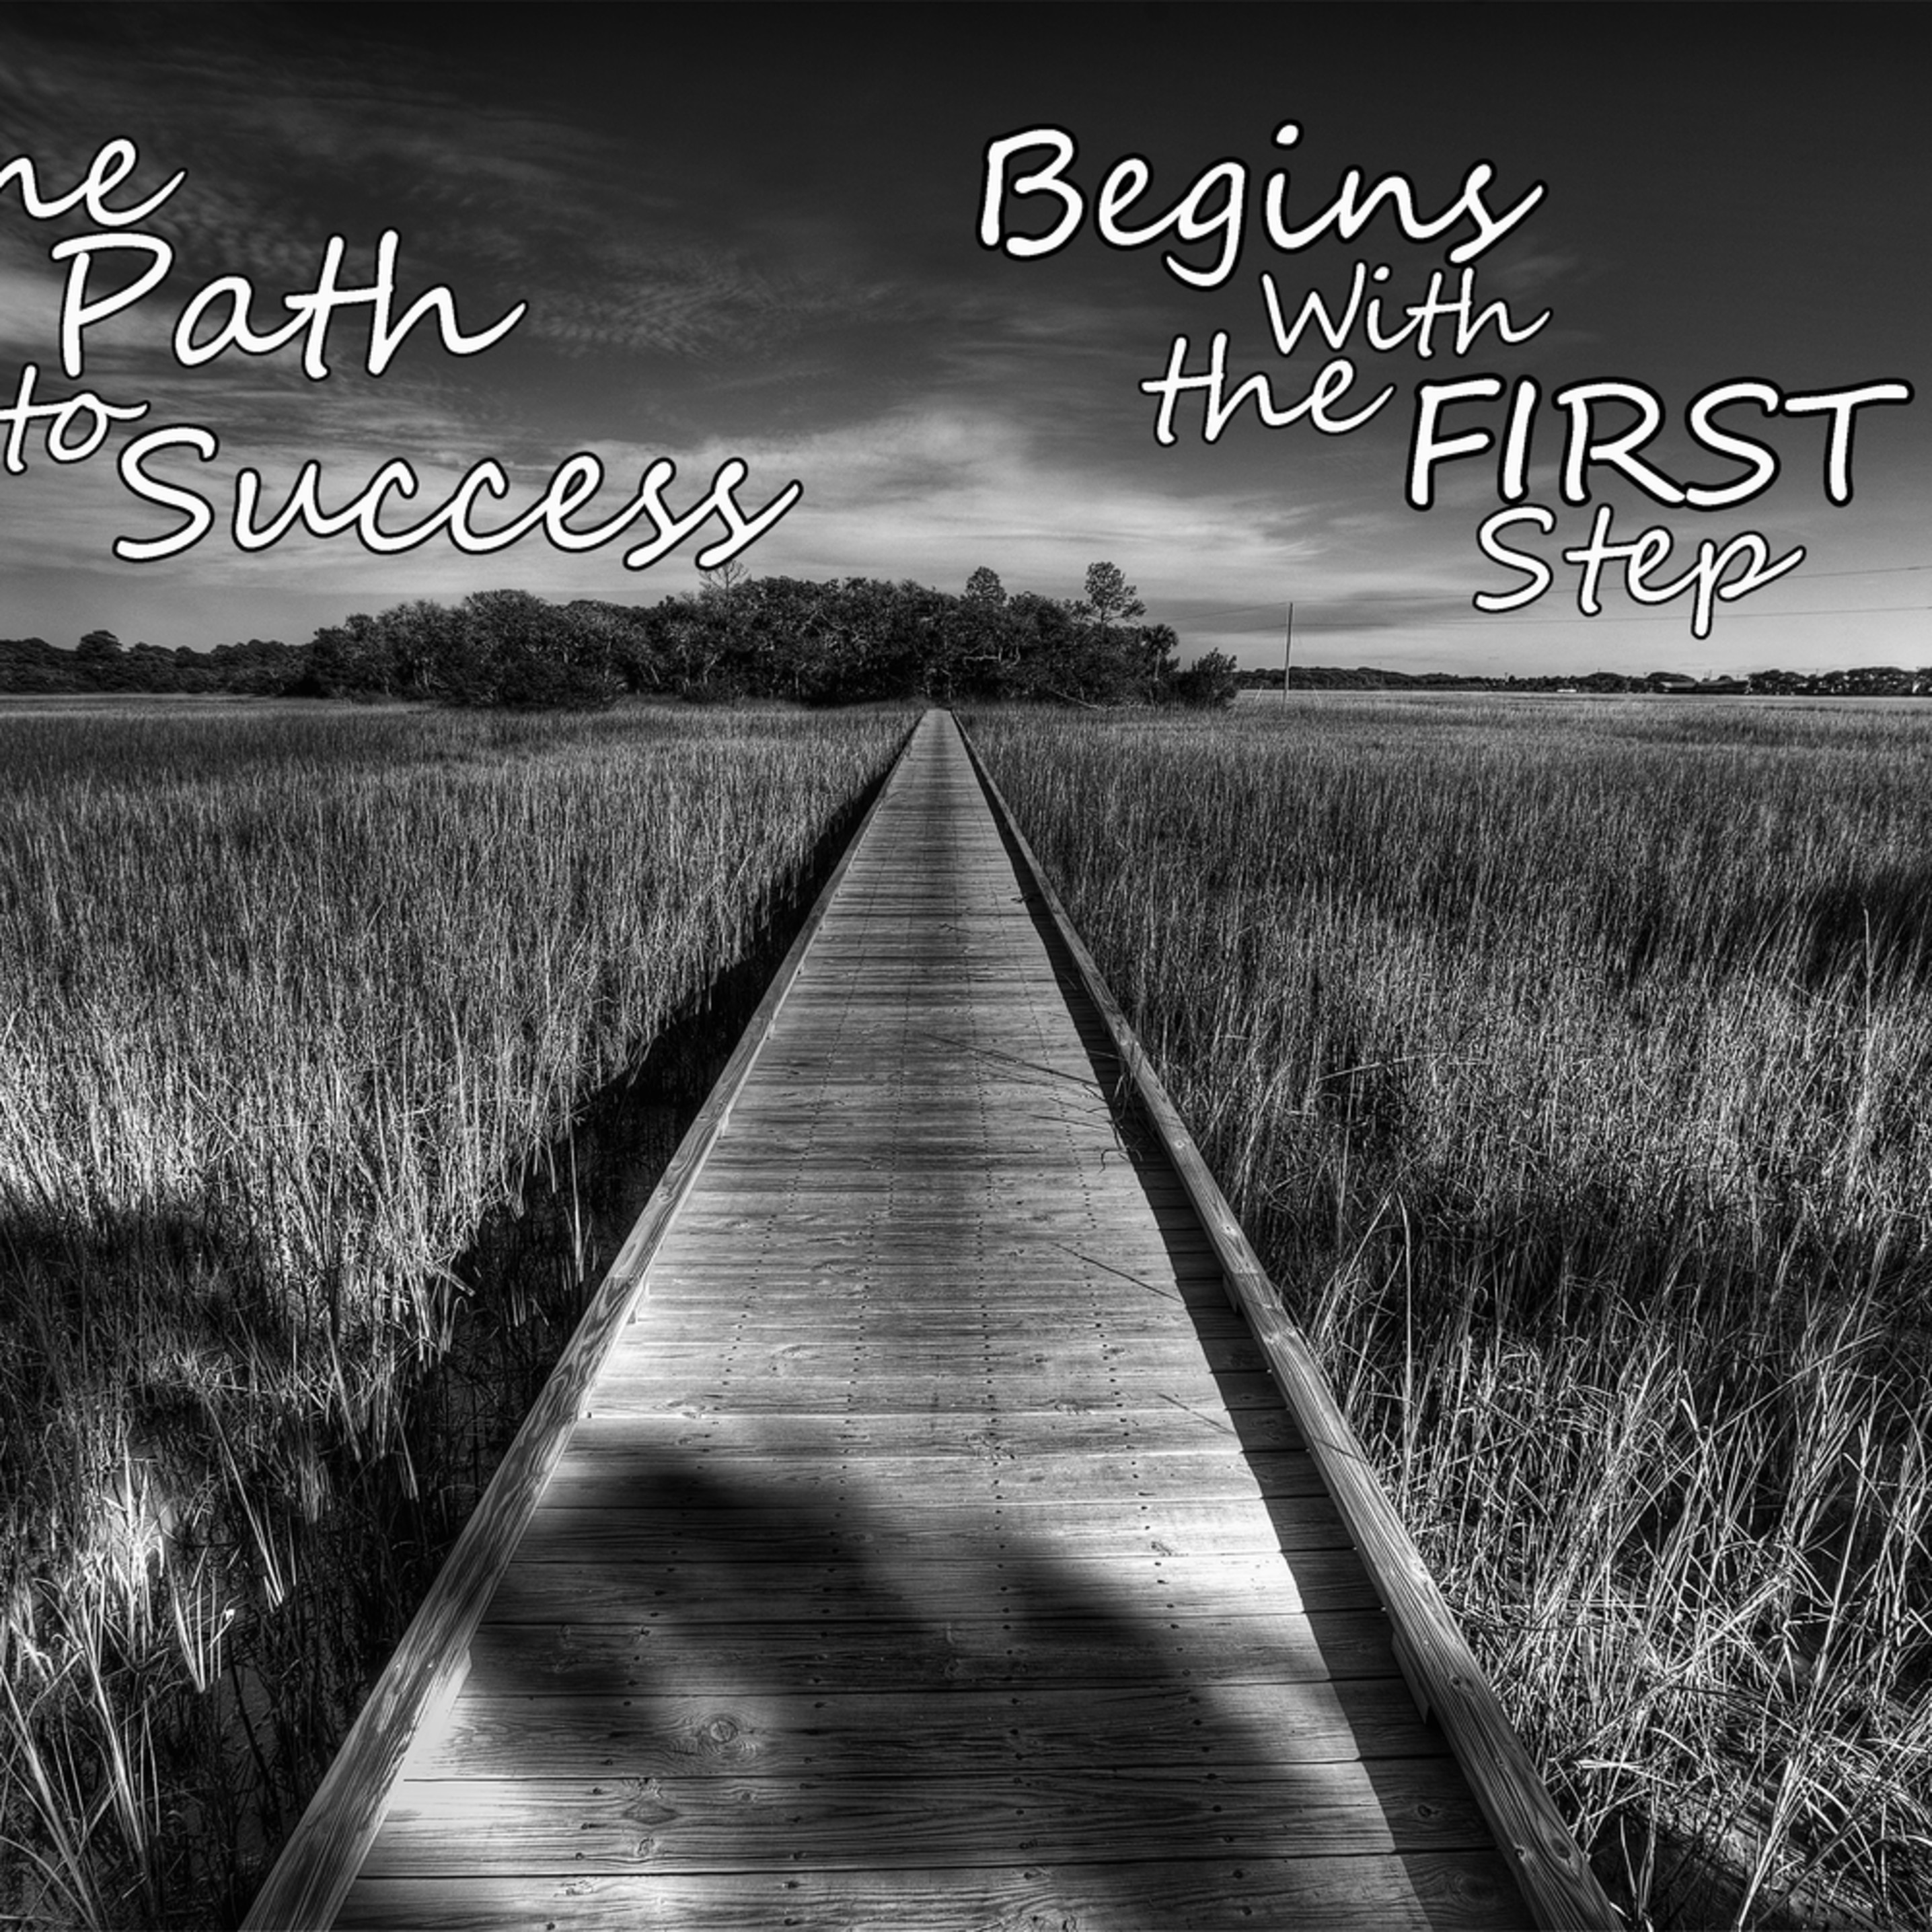 The path to success begins with the first step vg2tvn